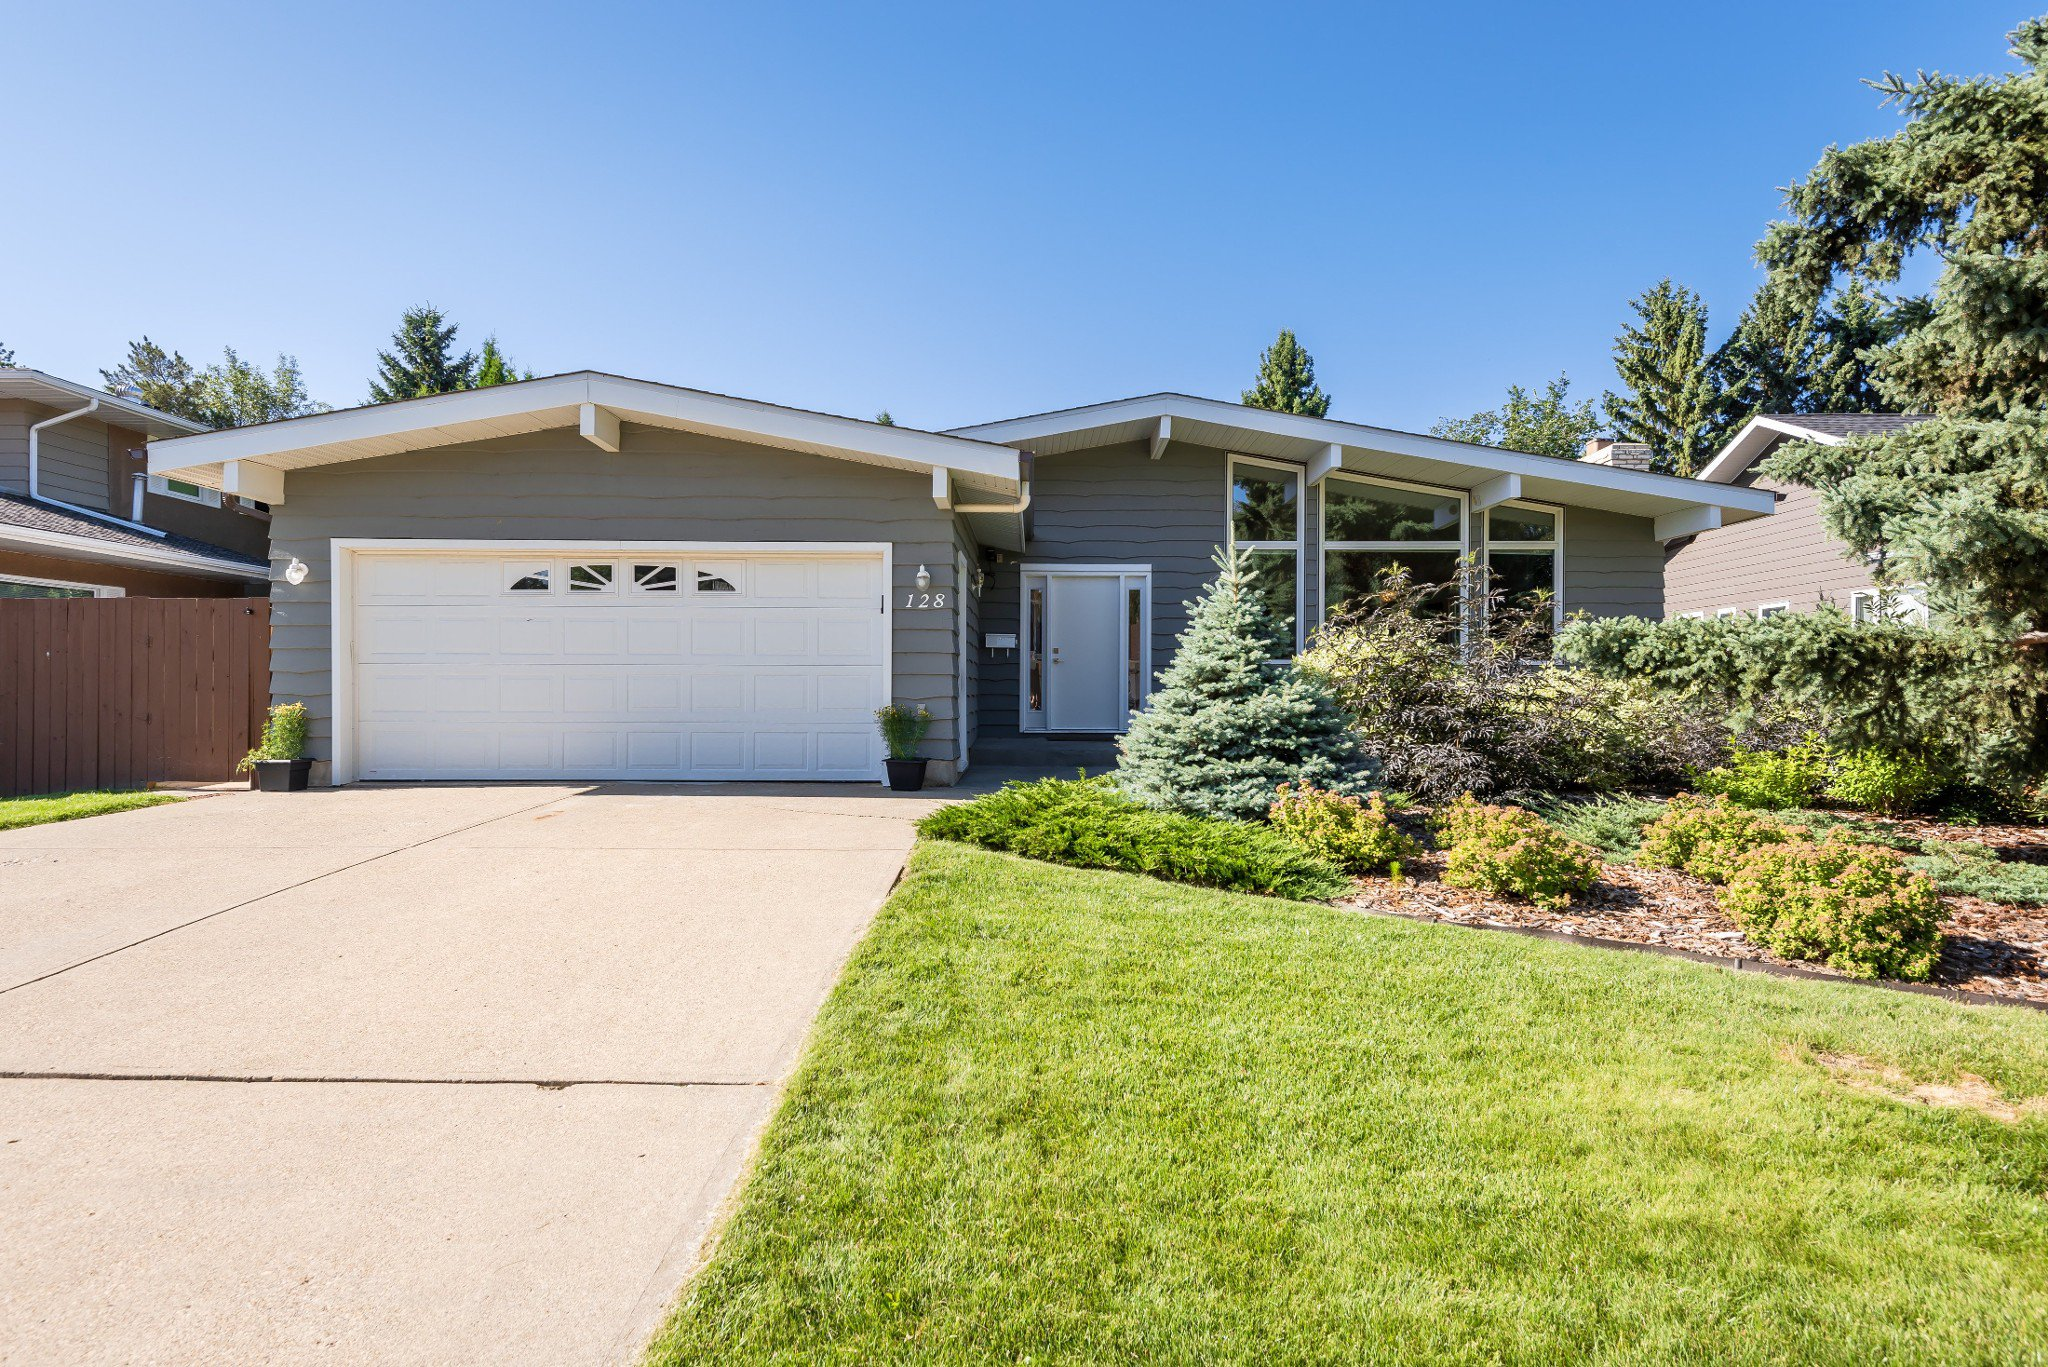 Main Photo: 128 Brander Drive in Edmonton: House for sale : MLS®# E4209194